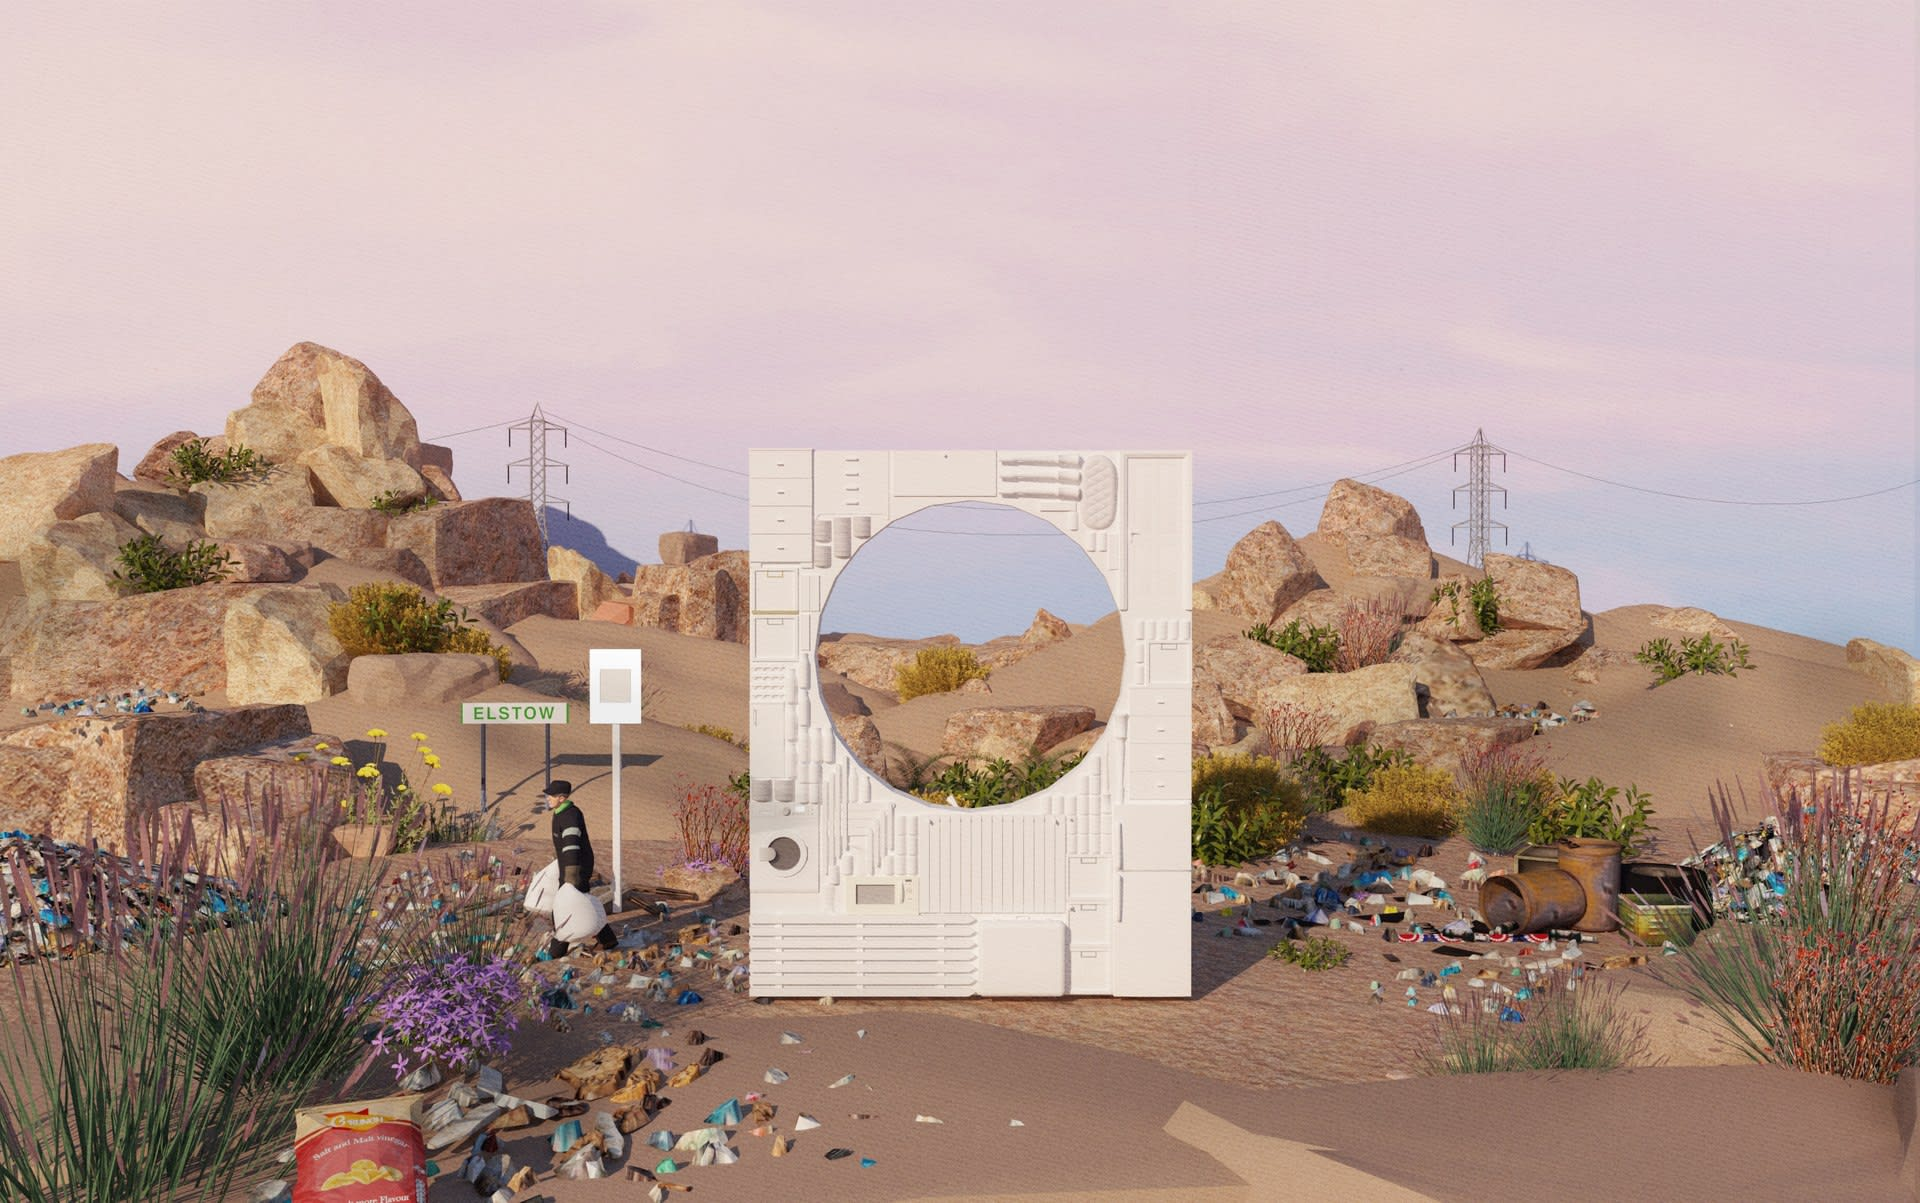 Re-imagining the Landfill; A scenario for a third transformation of the site